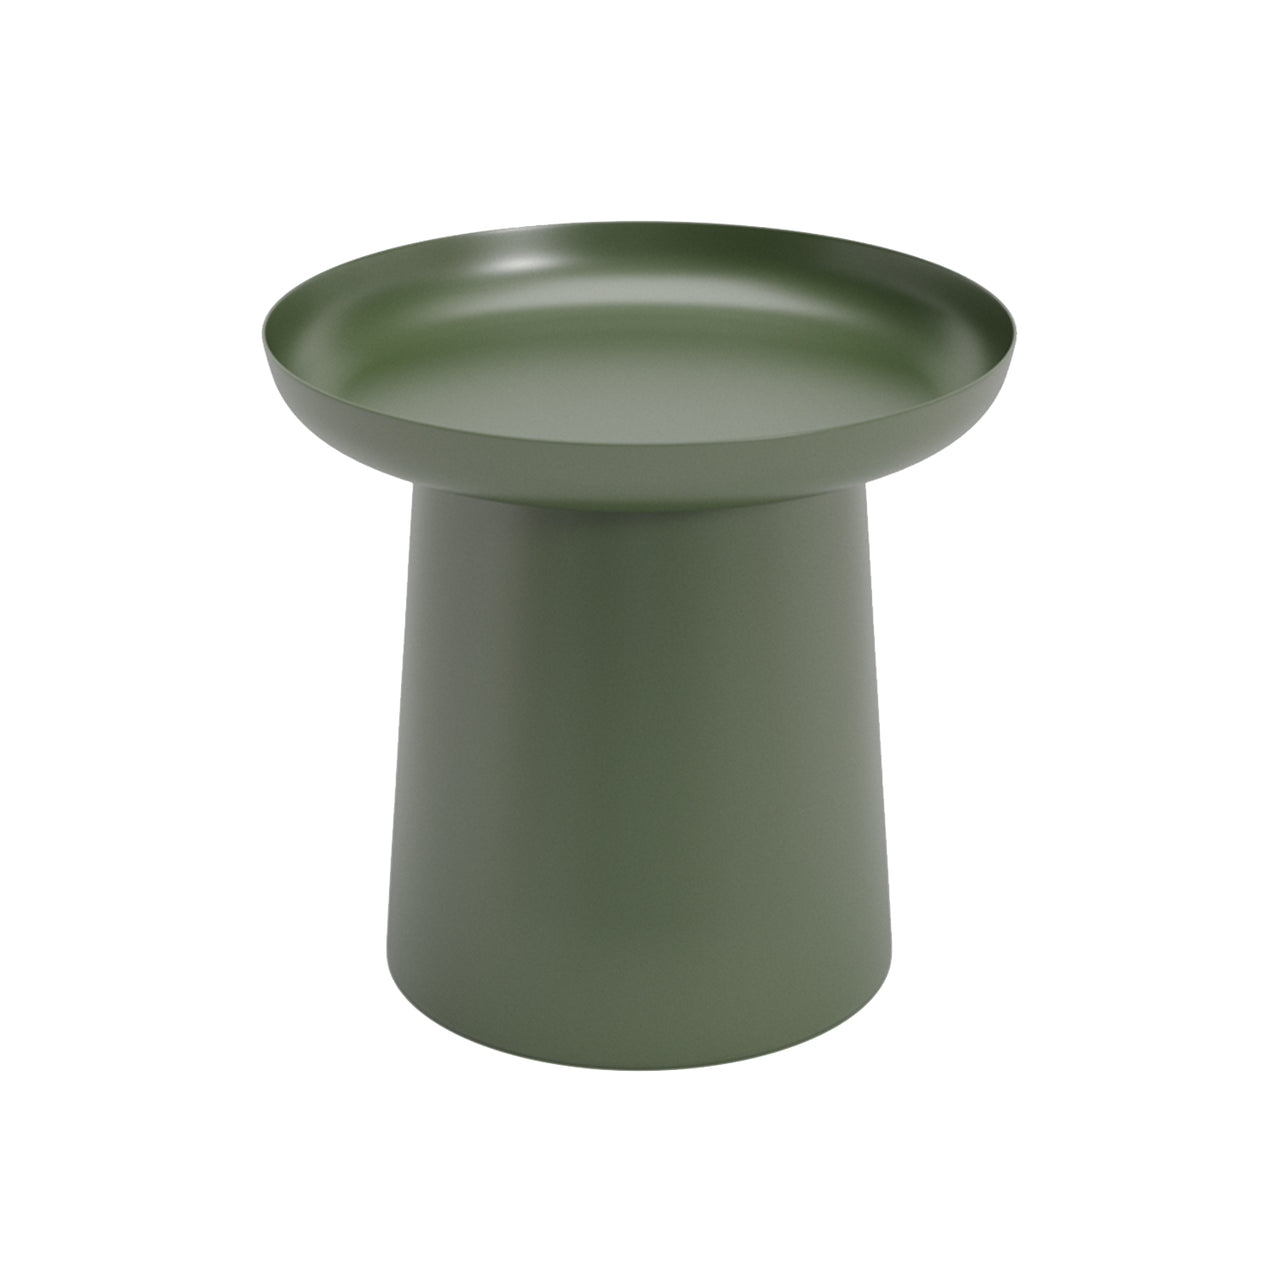 Musette Coffee + Side Table: Side Table + Olive Green